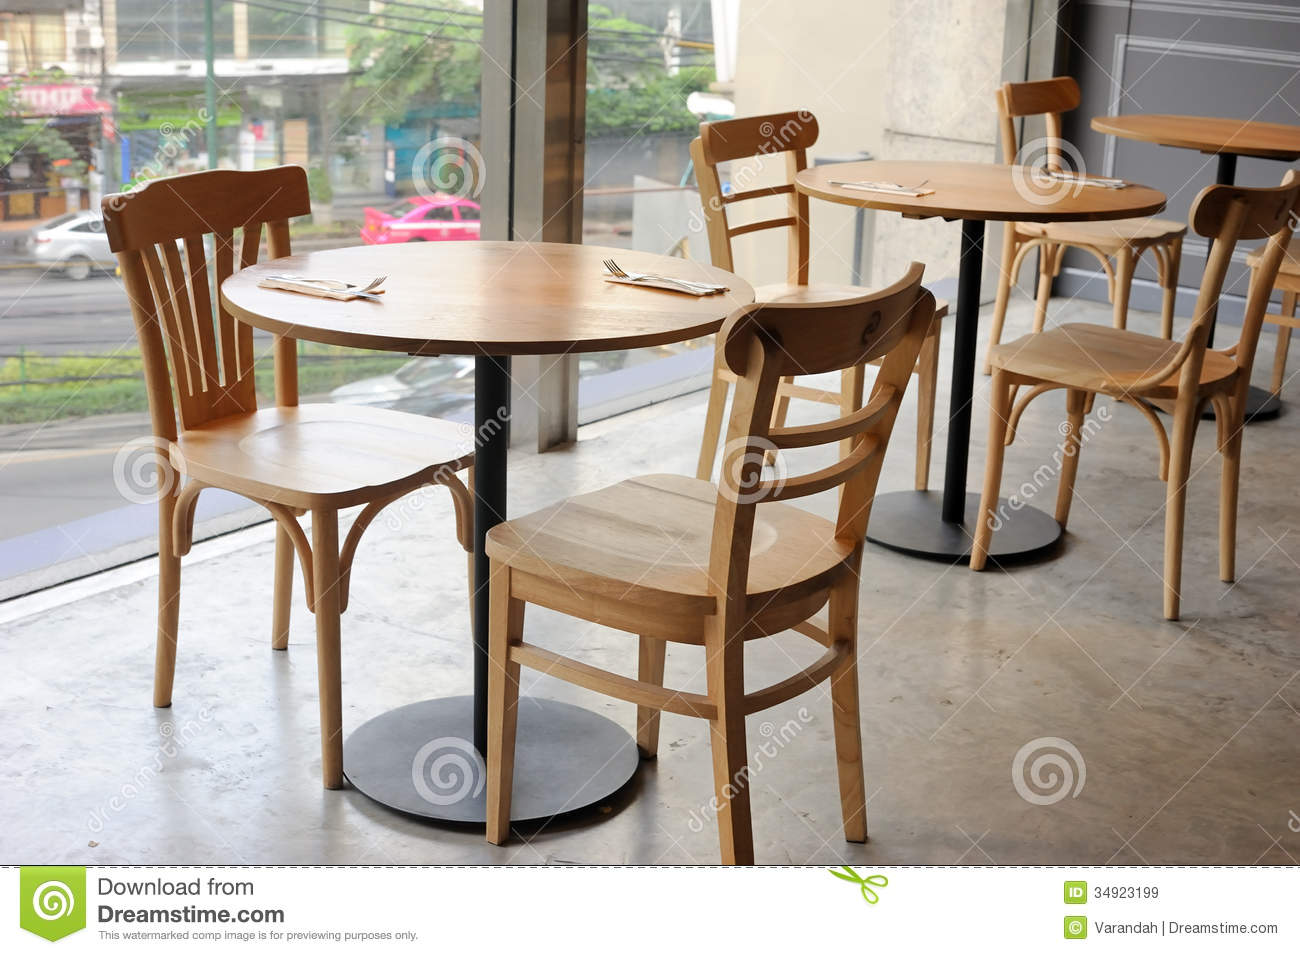 Wooden Chair And Table In Cafe Near Glass Wall Stock Image